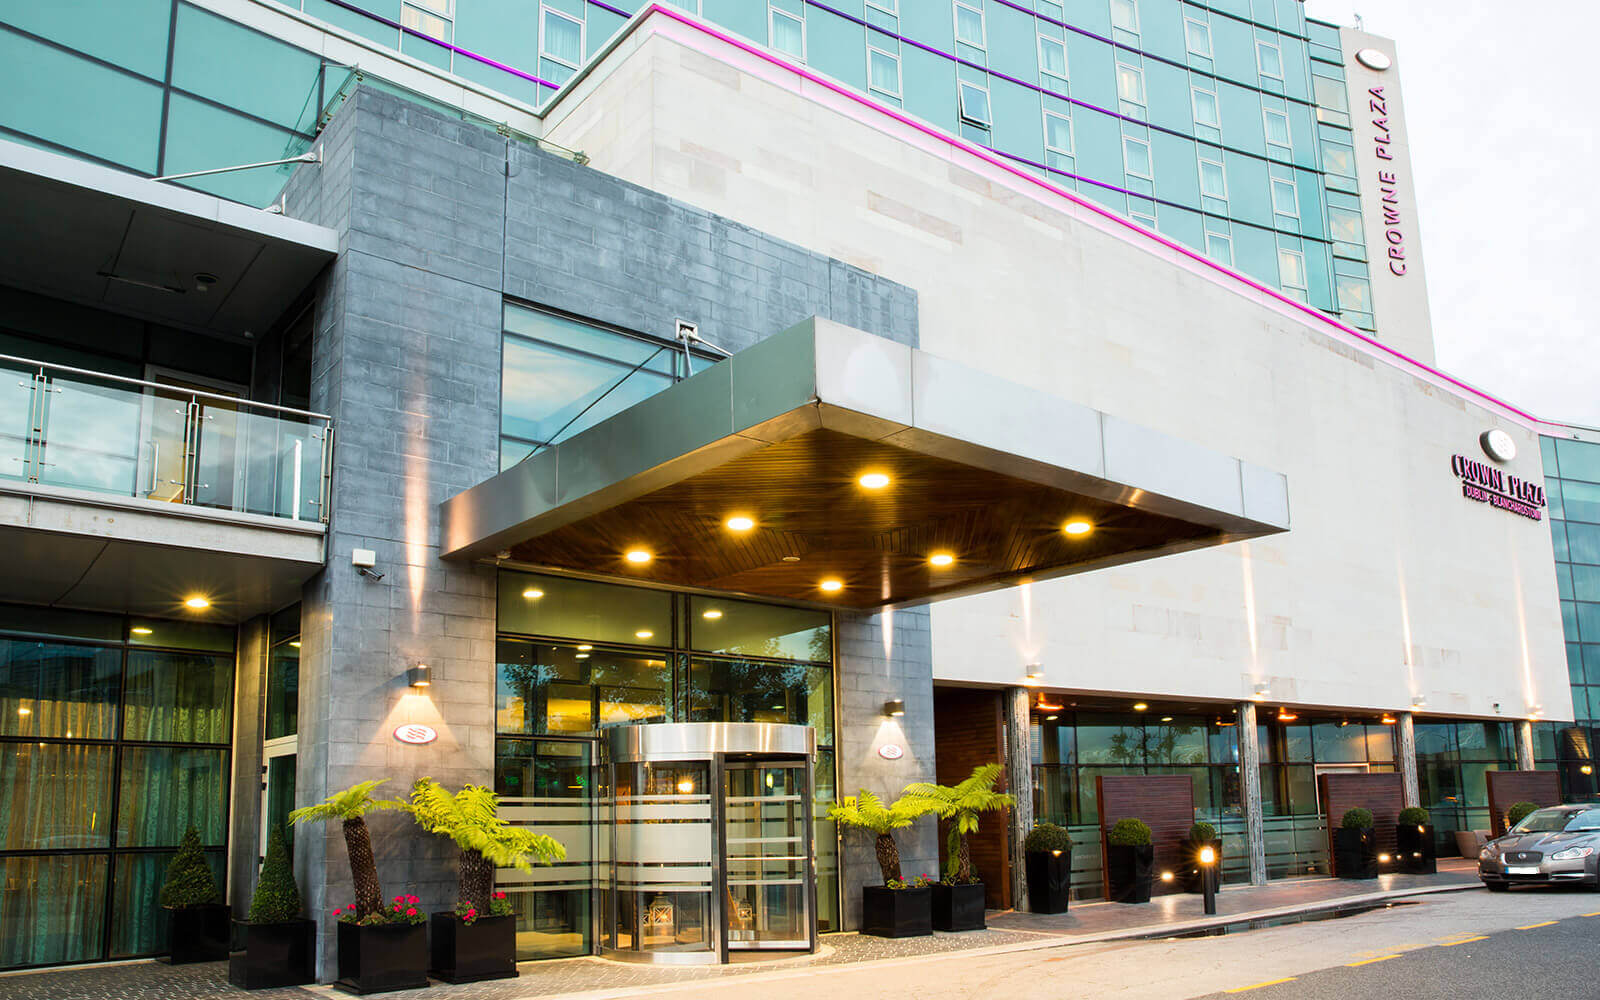 Crowne Plaza Blanchardstown exterior image with entrance